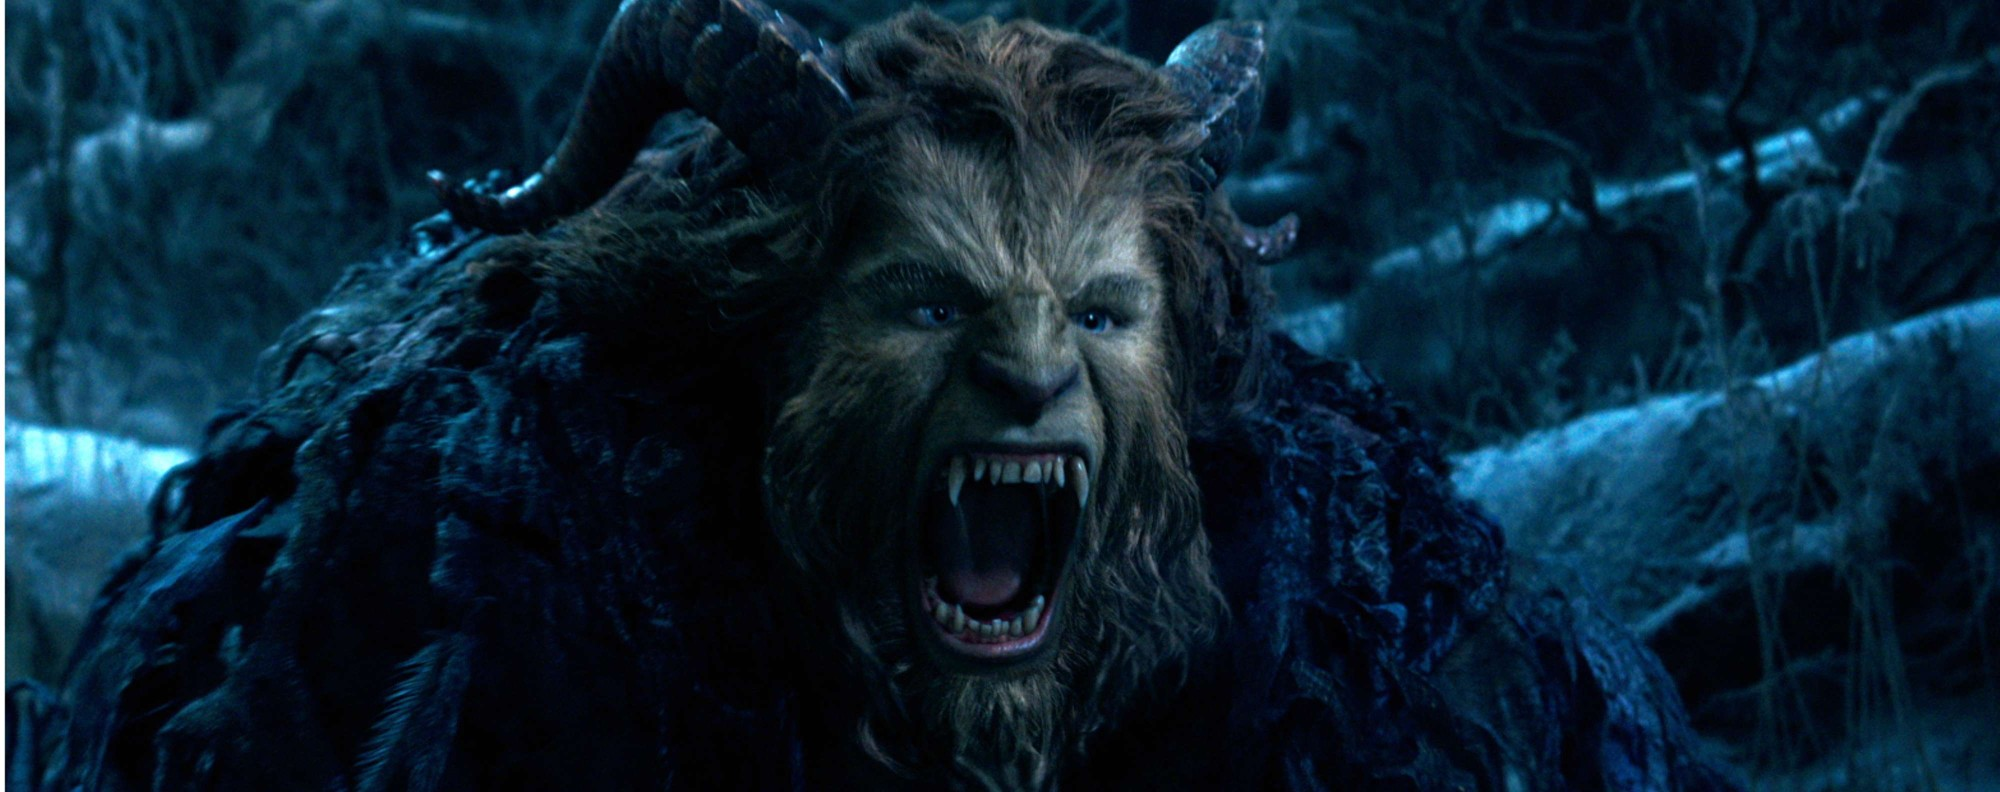 The Beast in 'Beauty and the Beast'. Photo: Disney